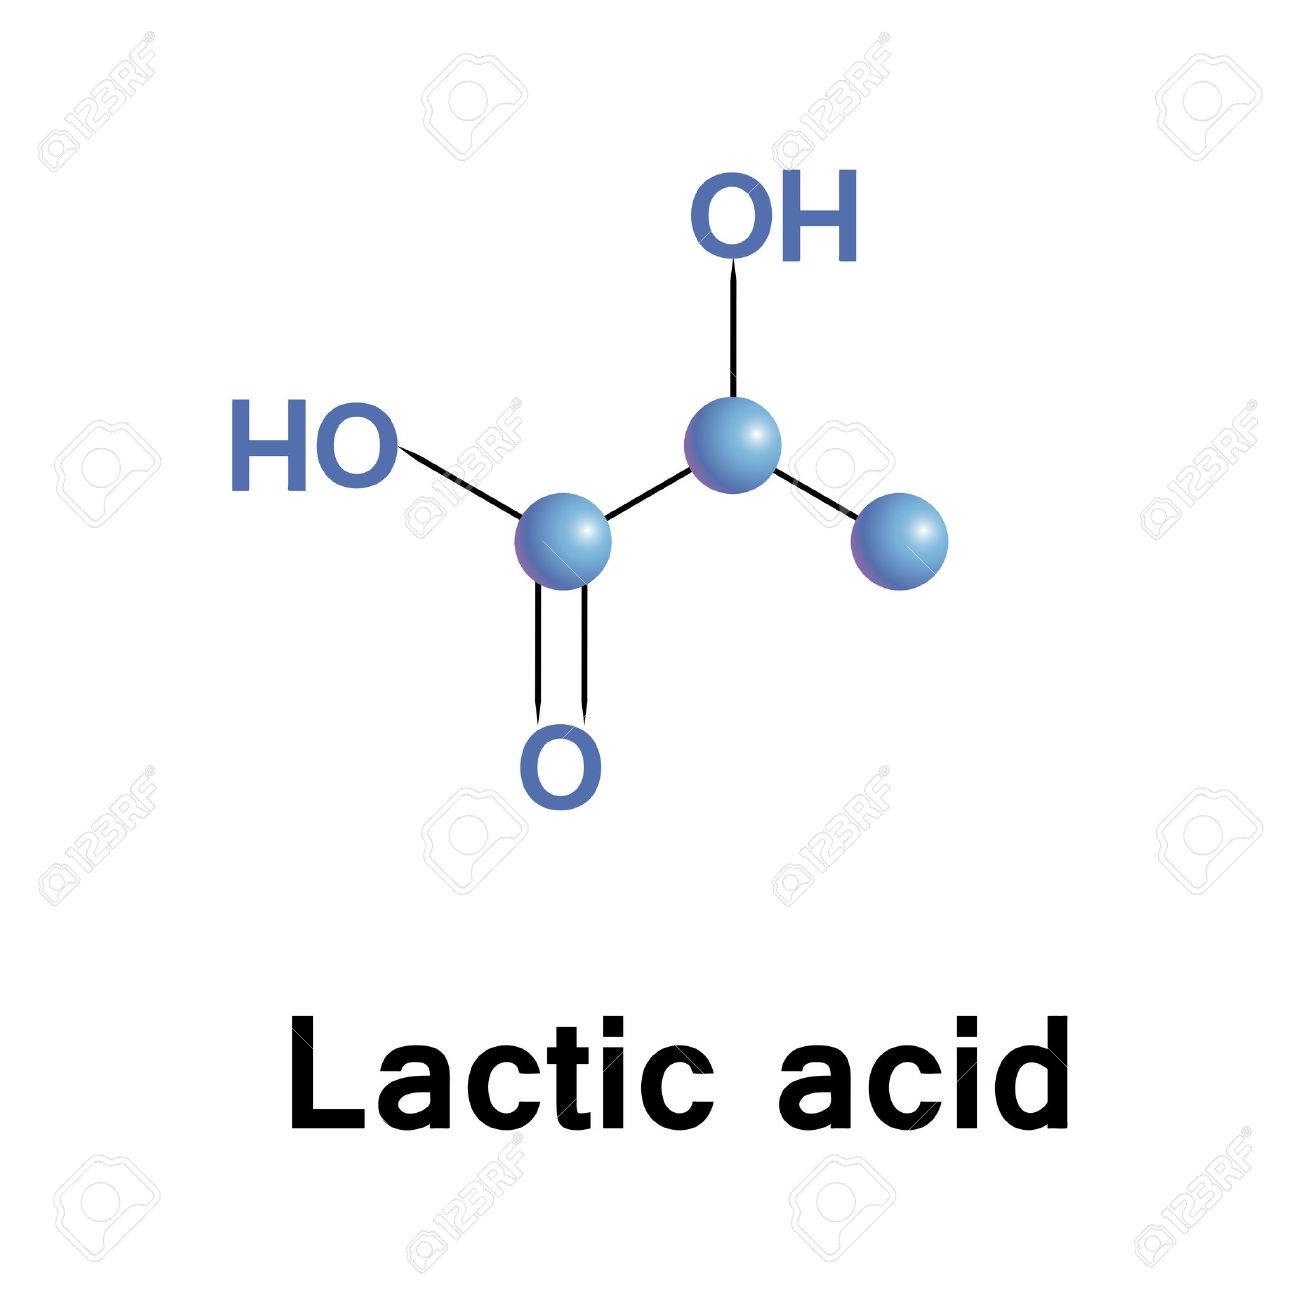 Lactic Acid Is An Organic Compound In The Form Of Its Conjugate